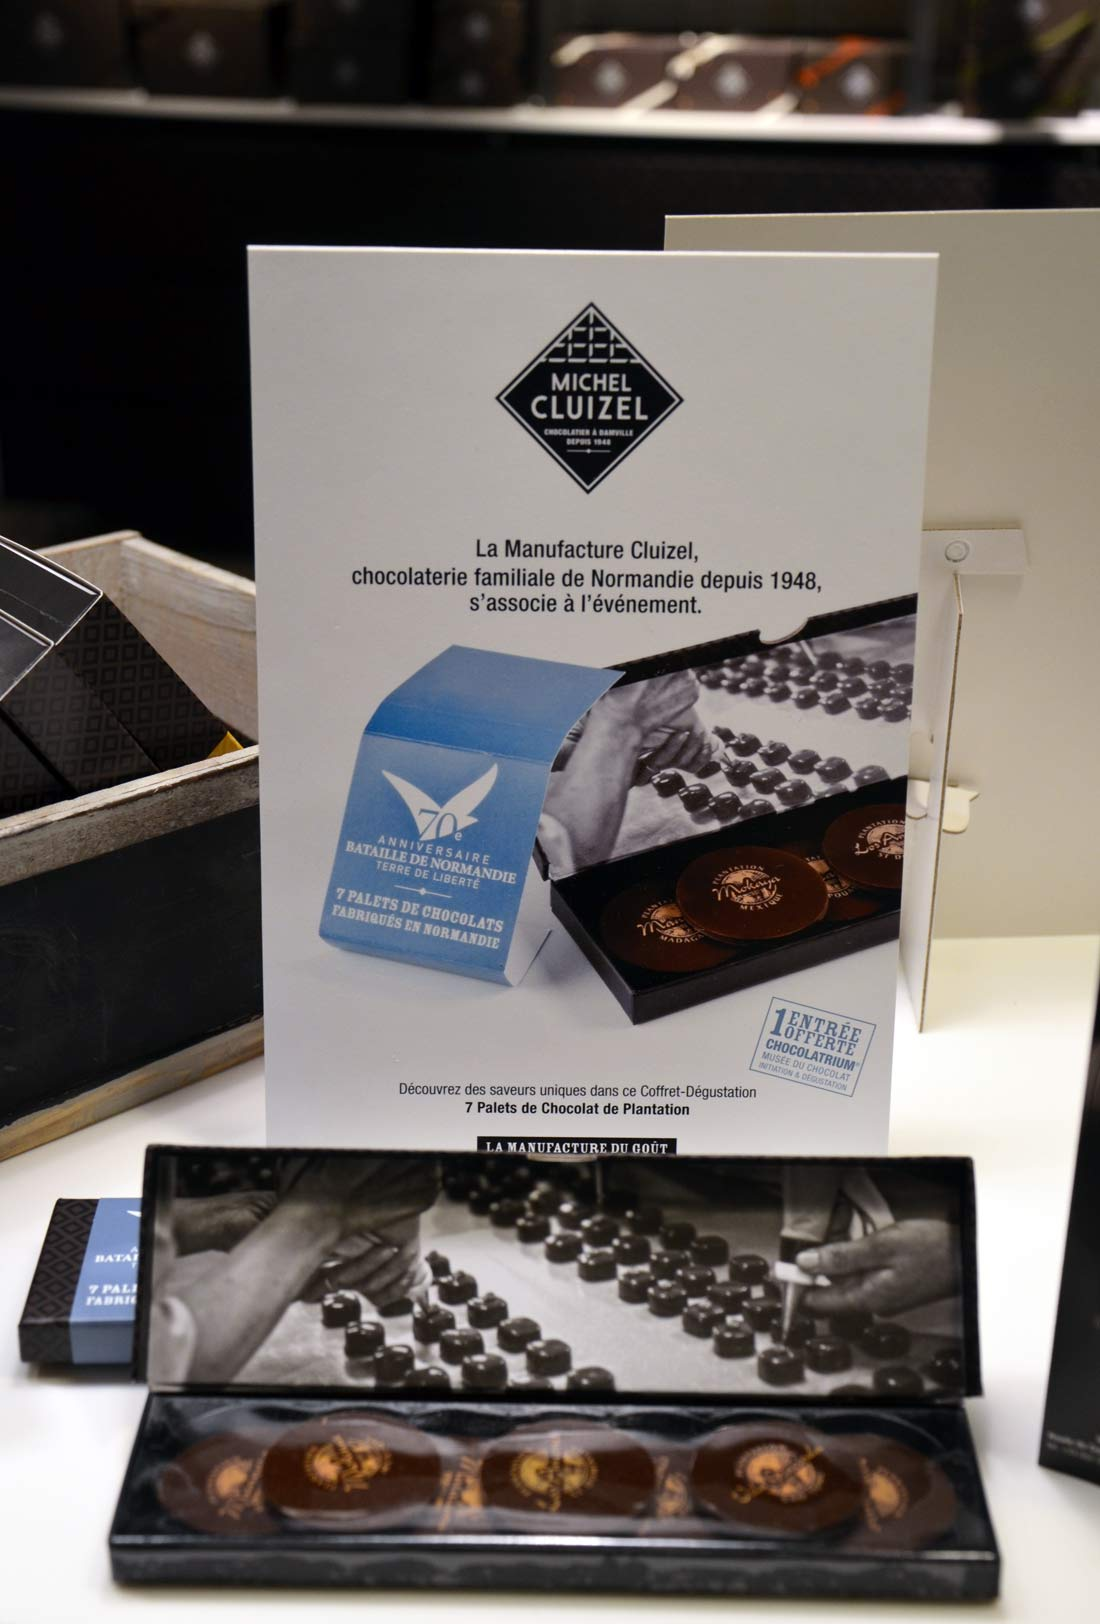 Chocolats Michel Cluizel pour le D-Day